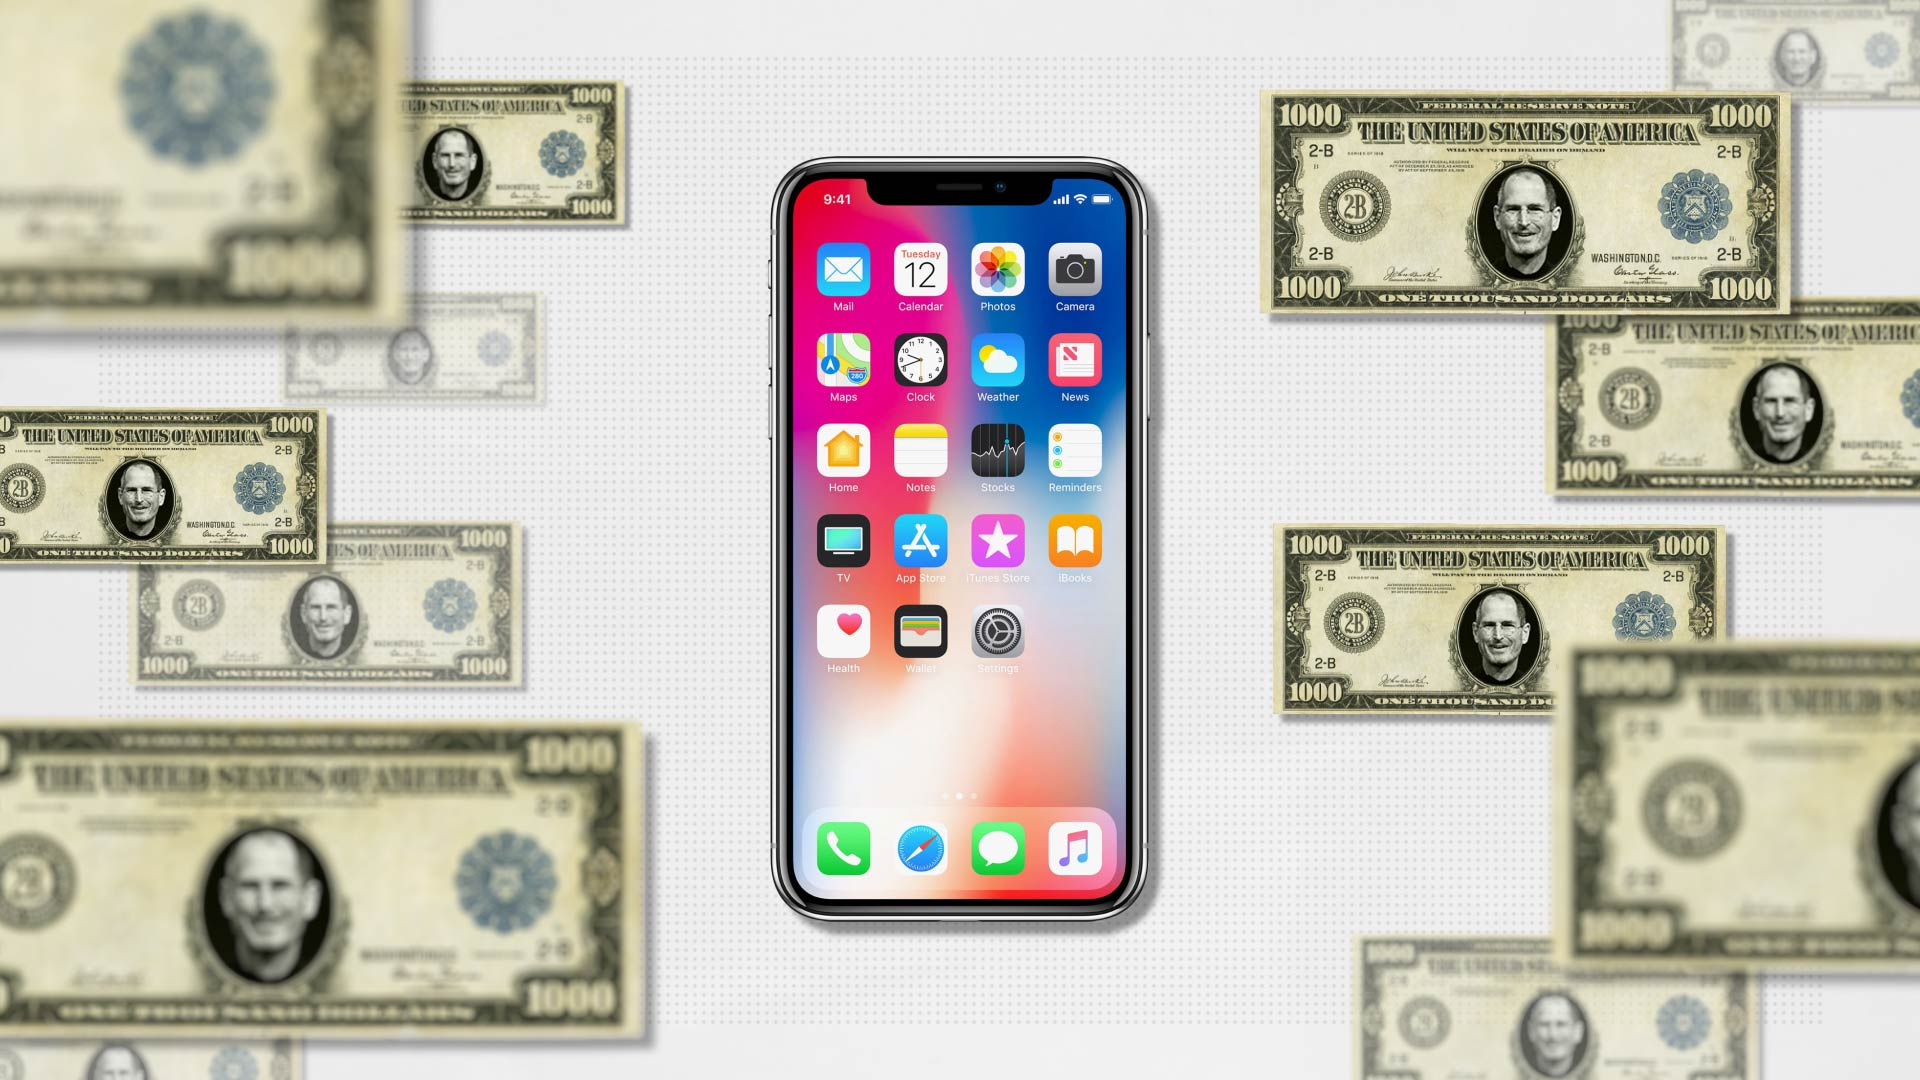 How Much Money Le Makes On Iphones